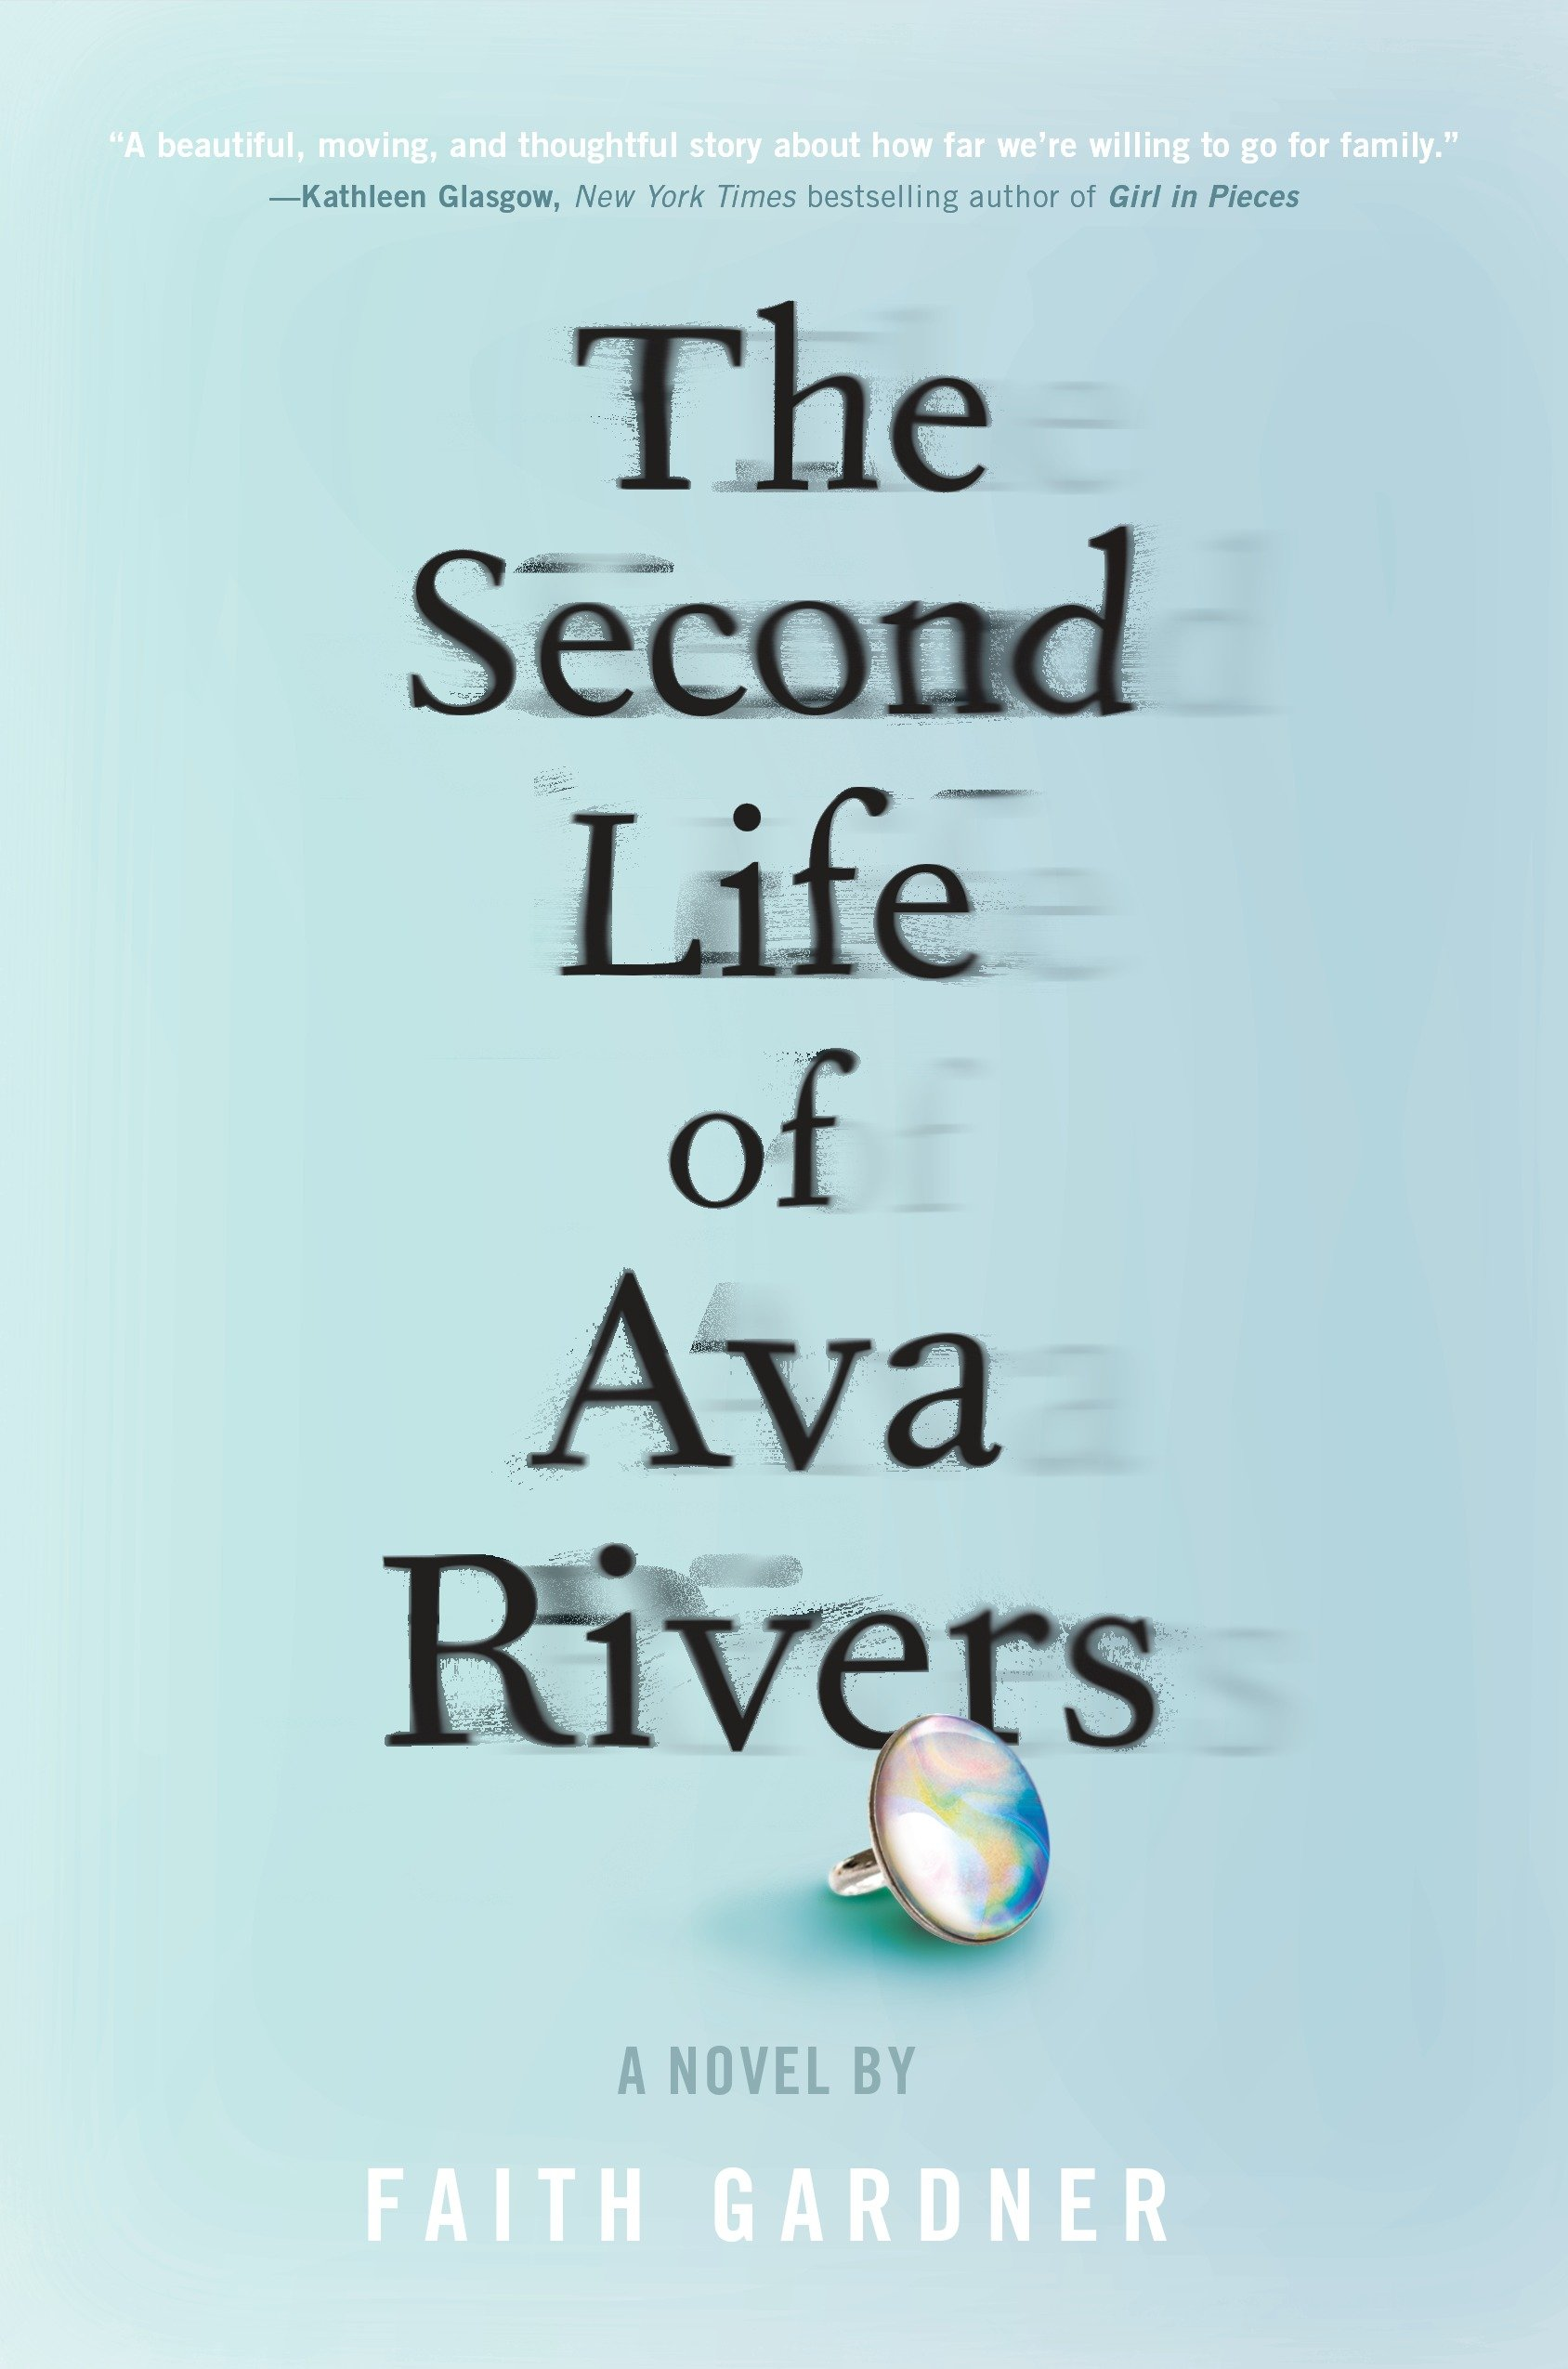 The second life of Ava Rivers cover image